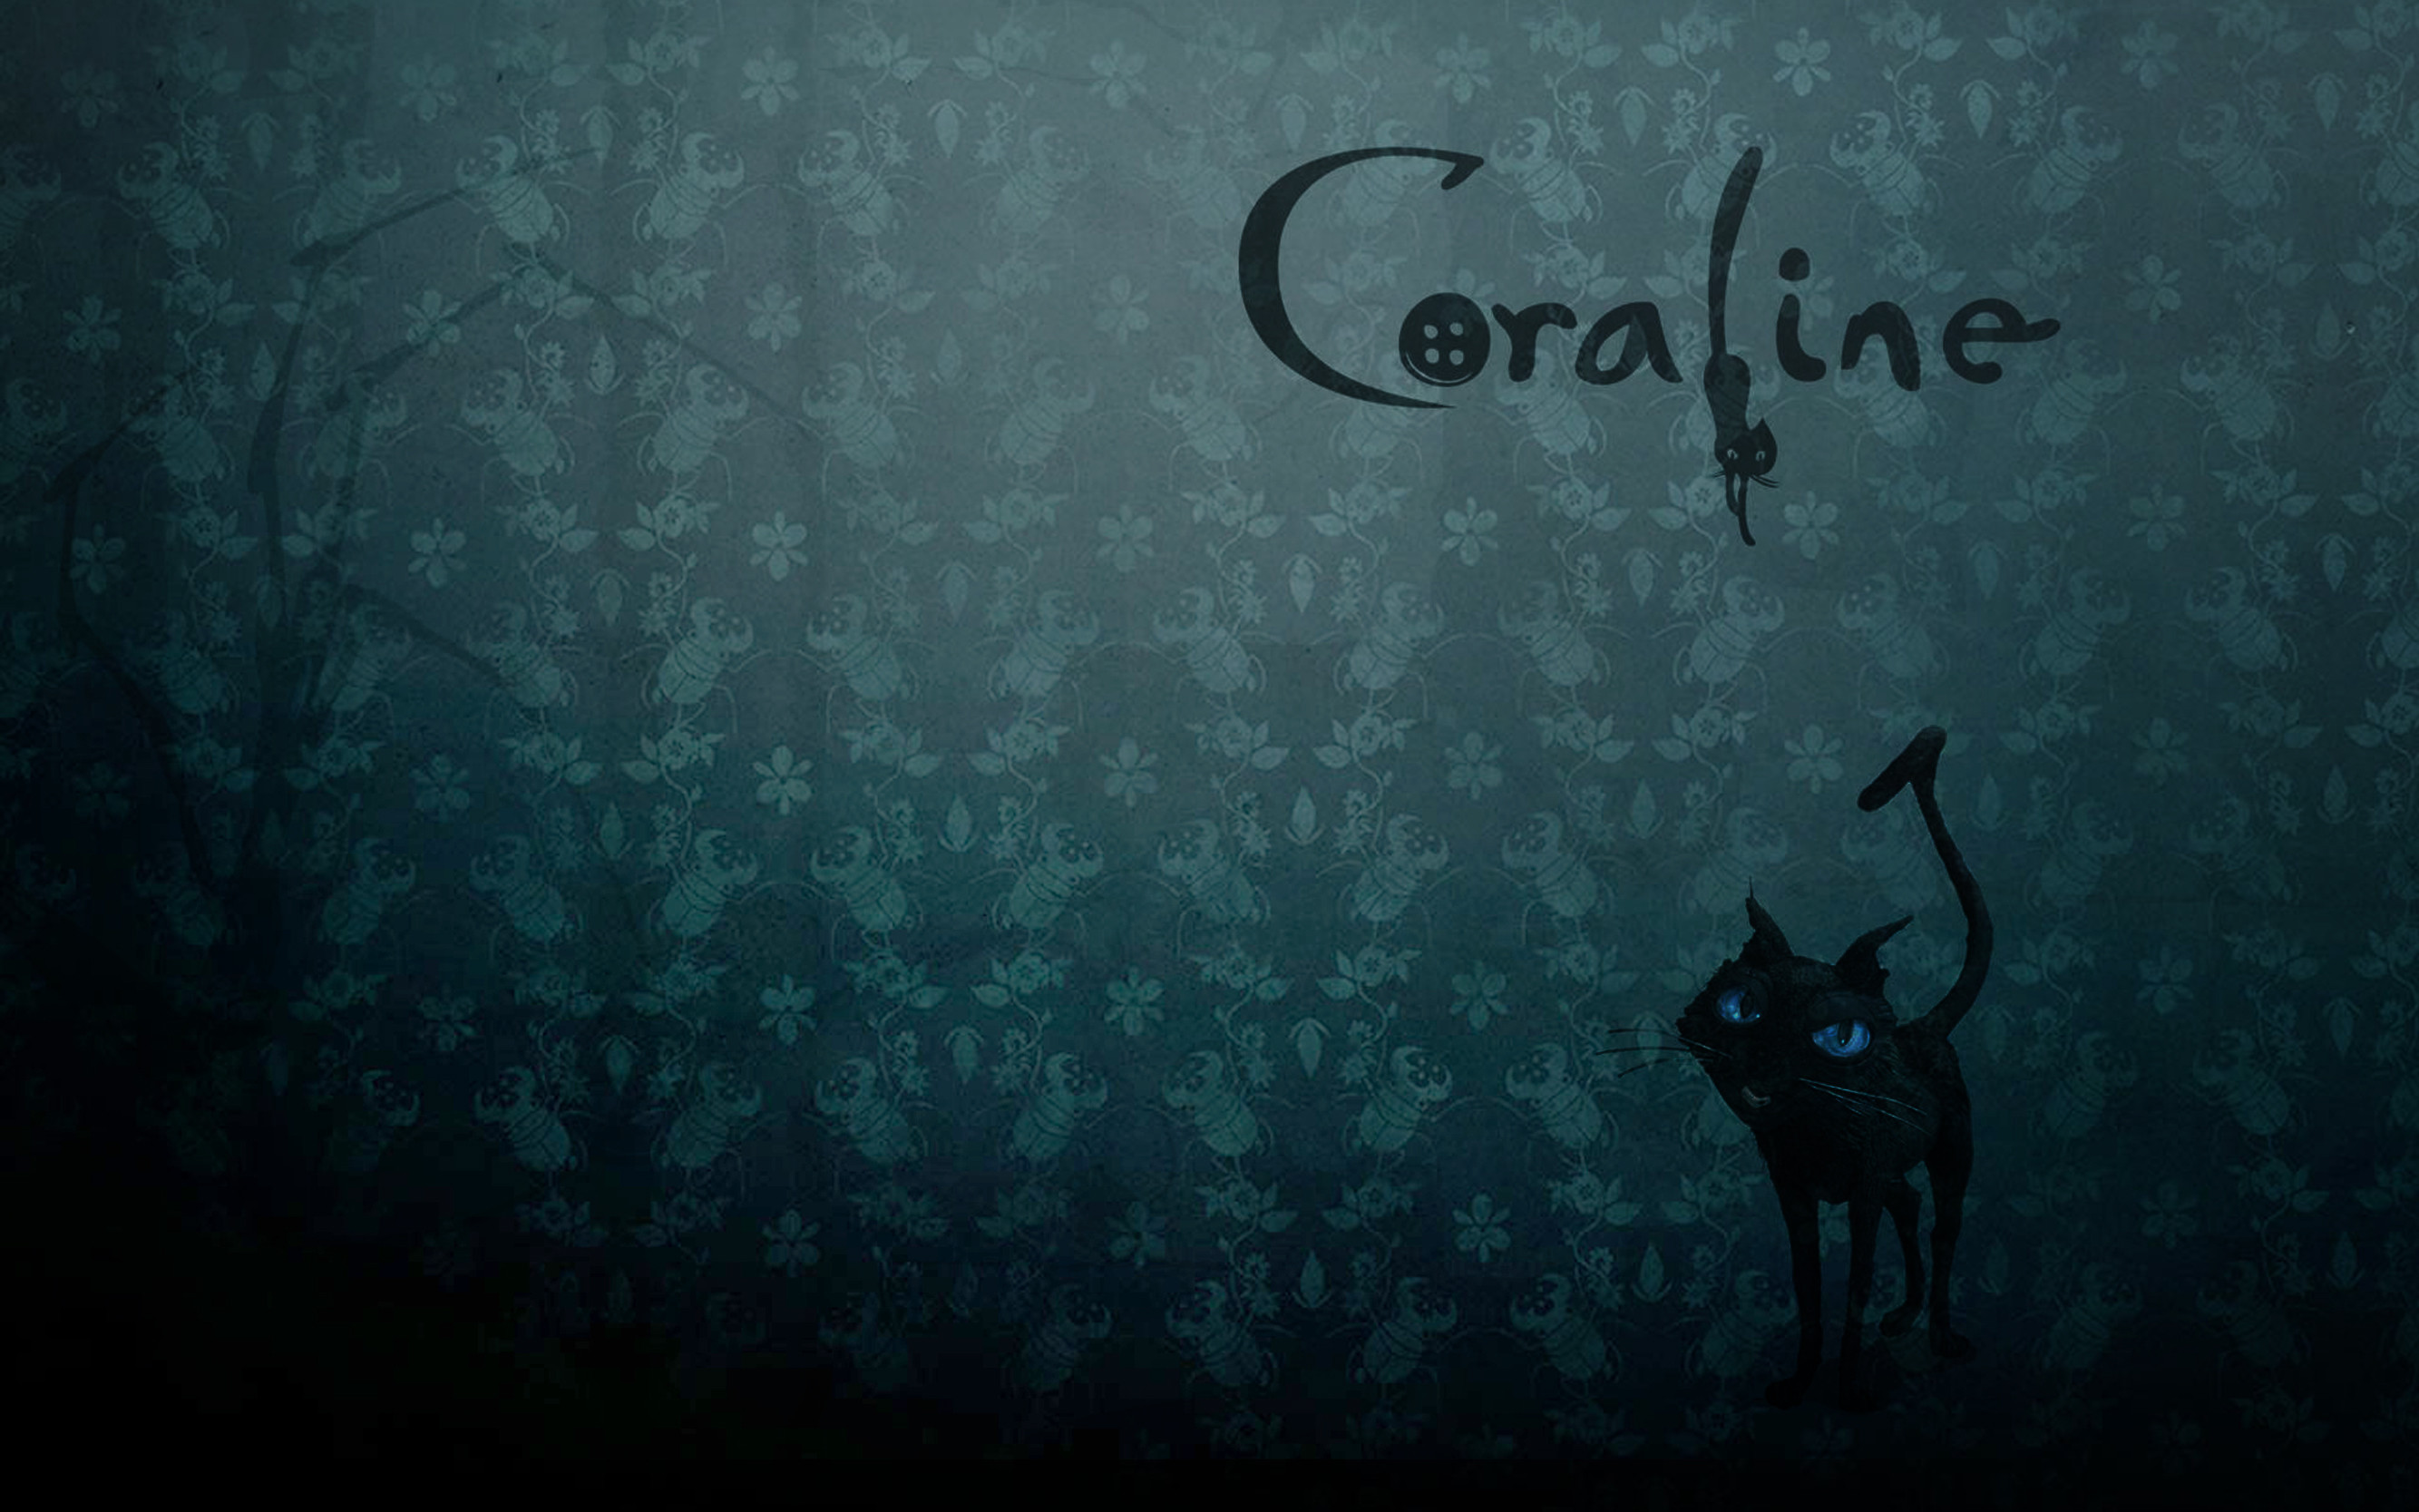 Coraline Backgrounds Posted By Christopher Anderson